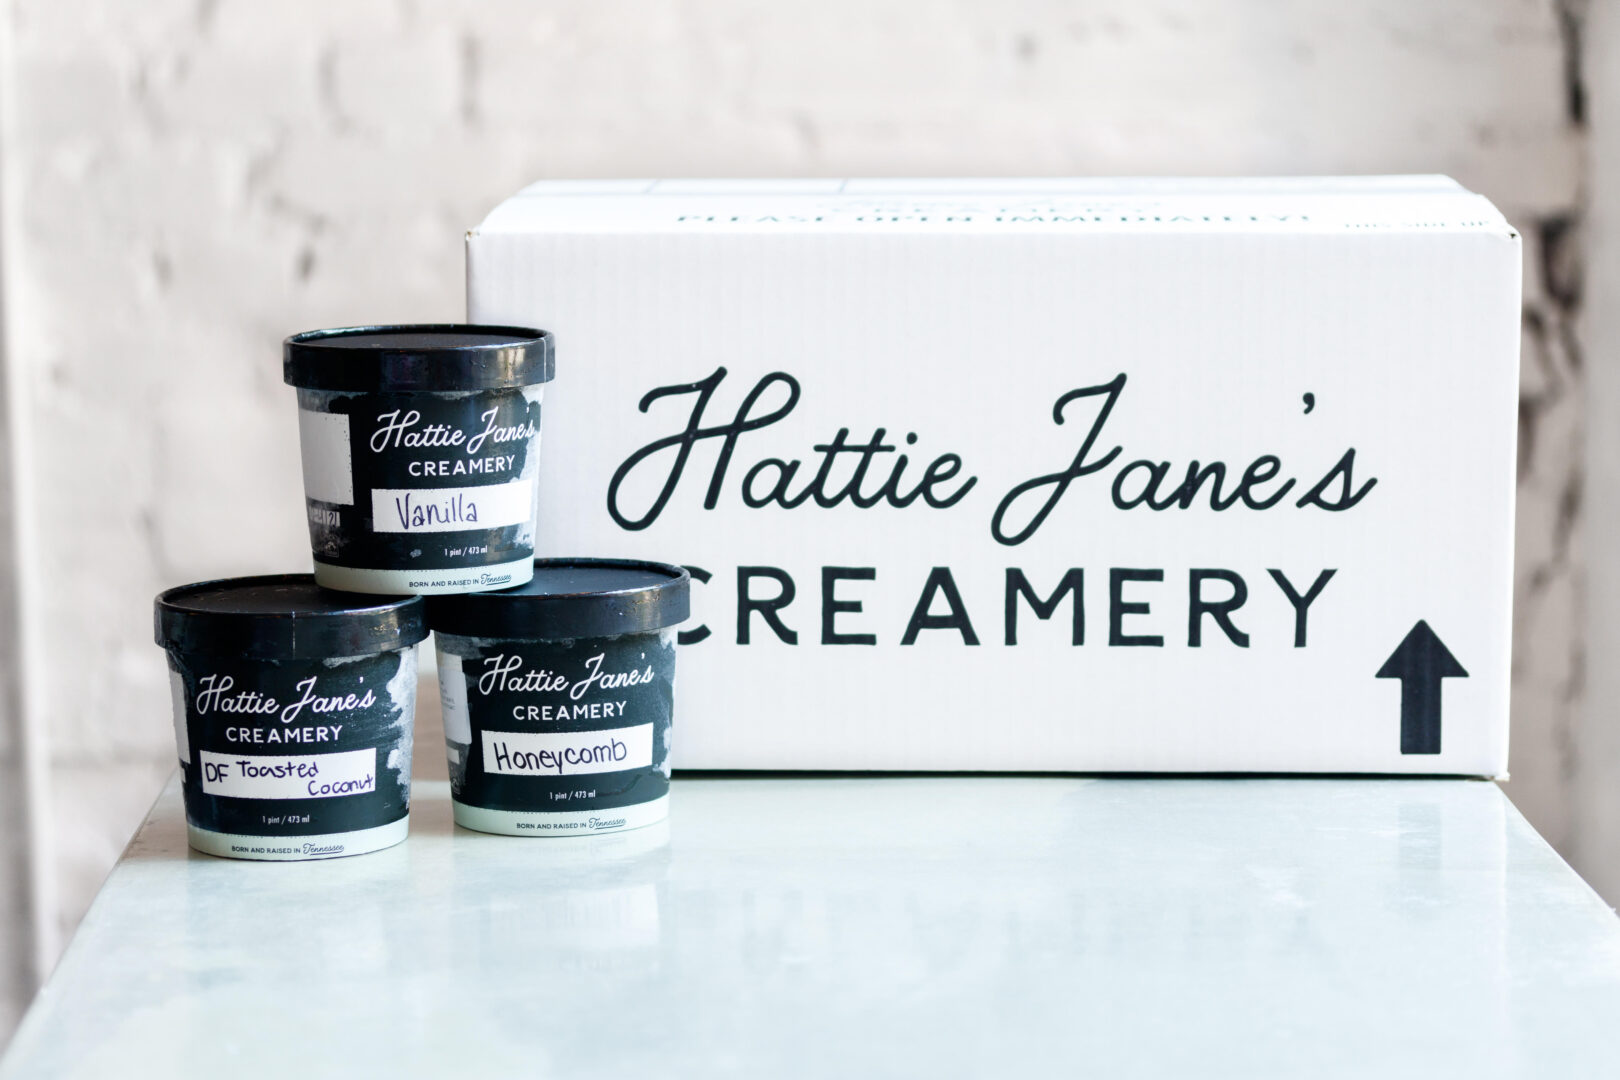 Hattie Jane's Creamery, ice cream shop in Franklin, TN with 3 other Middle Tennessee locations, now ships nationwide!